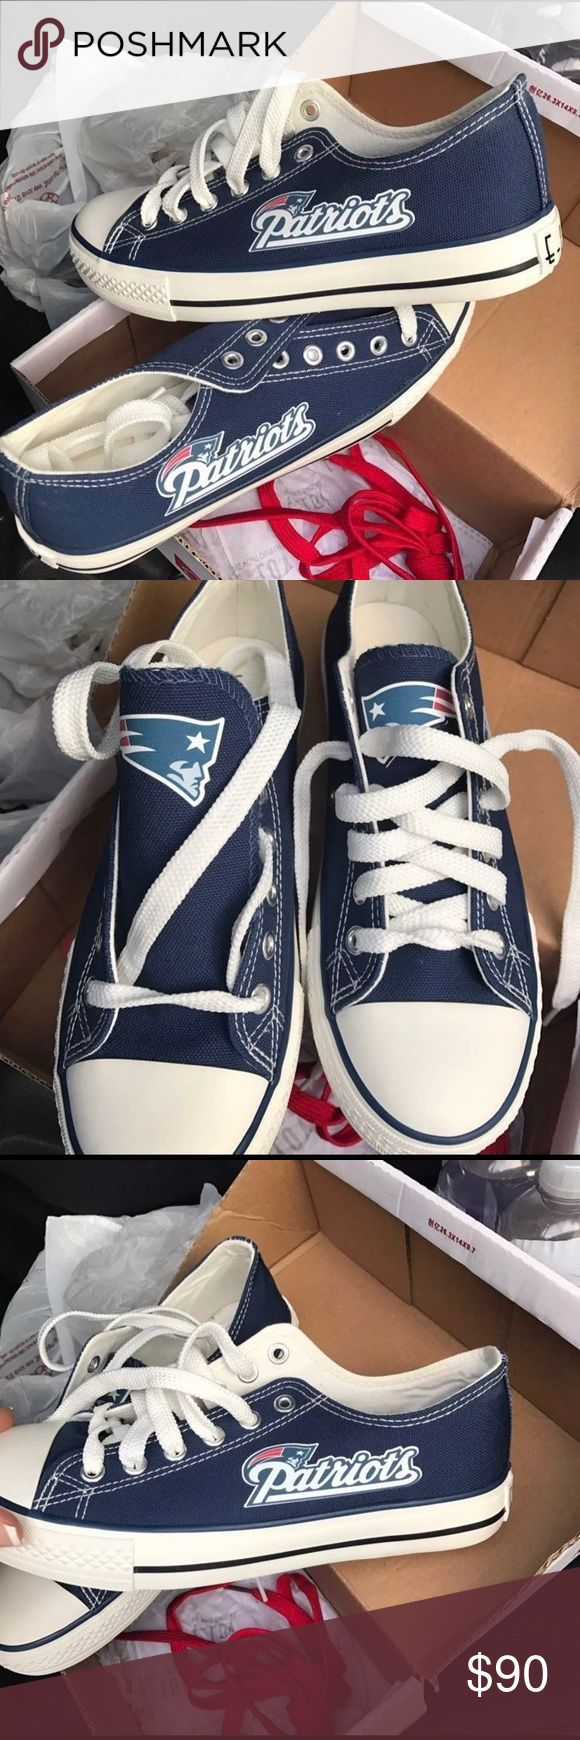 Nib New England patriots sneakers 7/7.5 New in box patriots sneakers. Would fit 7/7.5. I'm an 8 and I had to order a different size they were too small for me. Sz 7.5 get them in time for the super bowl. I hsve these in an 8 and I got so many compliments at the  pats game ! Shoes Sneakers